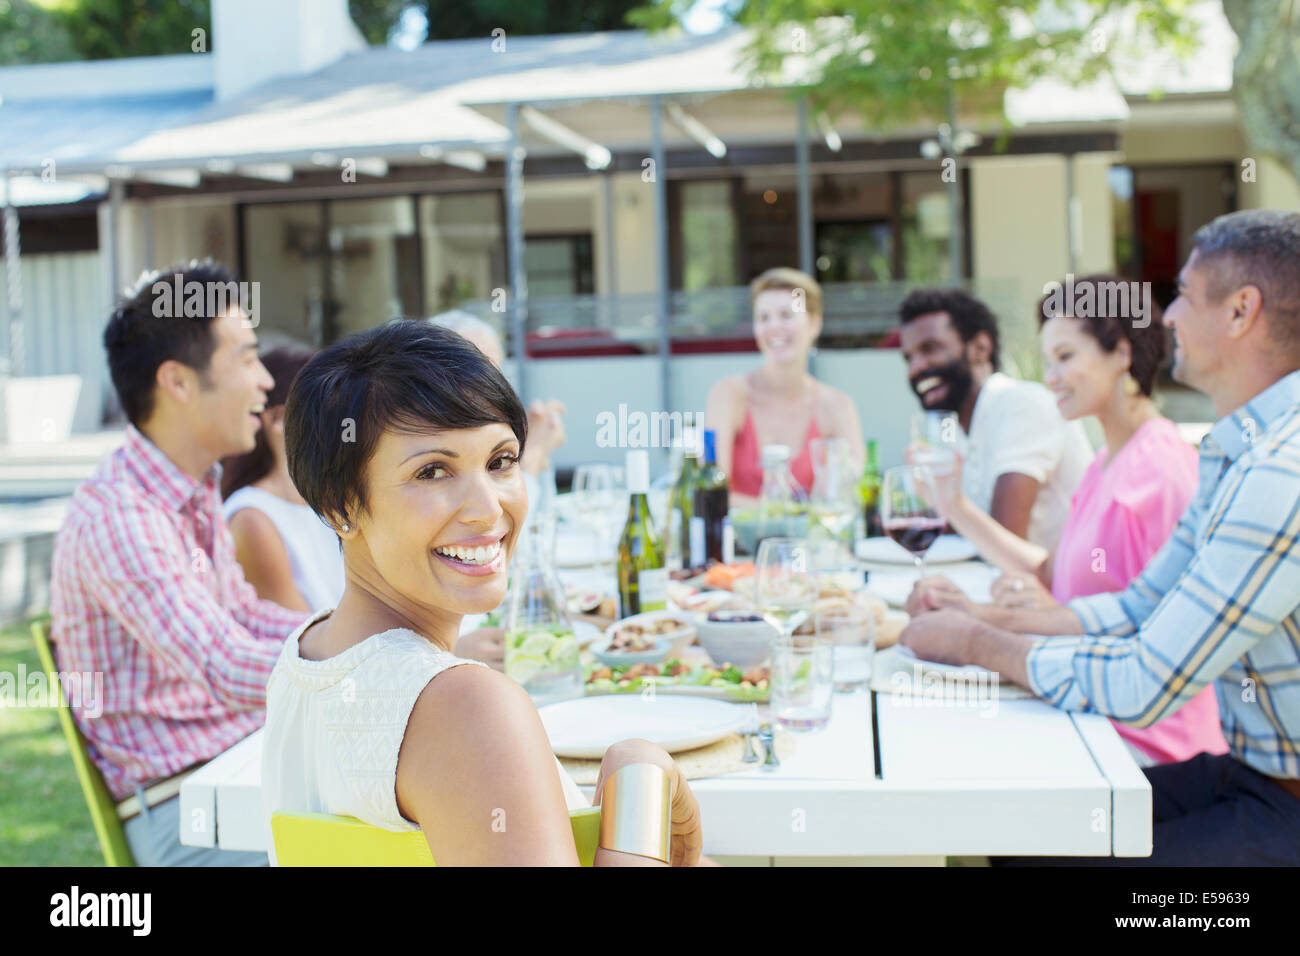 Woman smiling at table outdoors - Stock Image